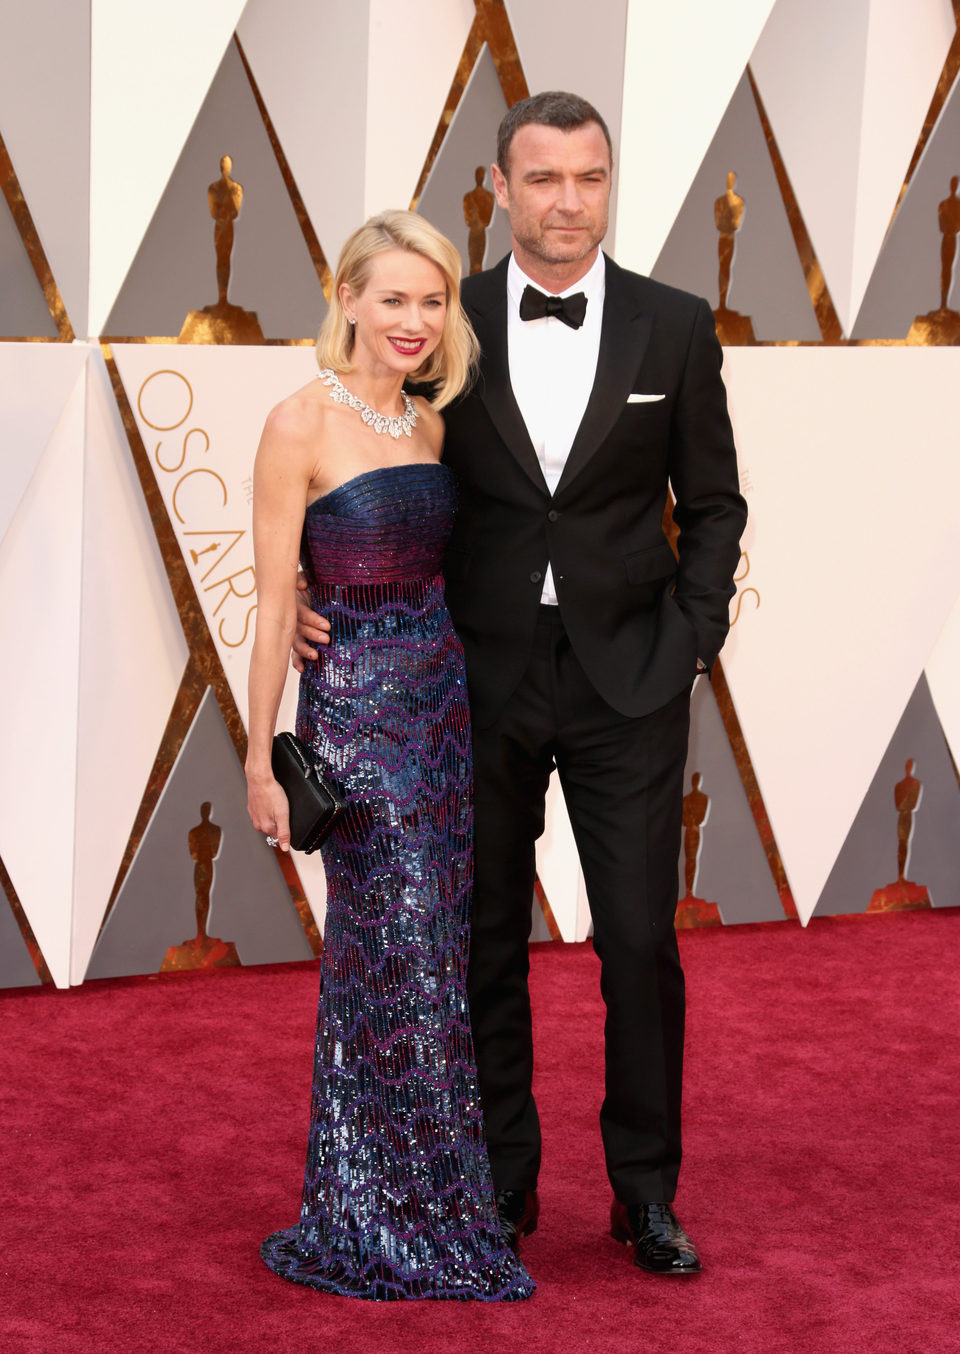 Naomi Watts and Liev Schreiber at the Oscars 2016 red carpet